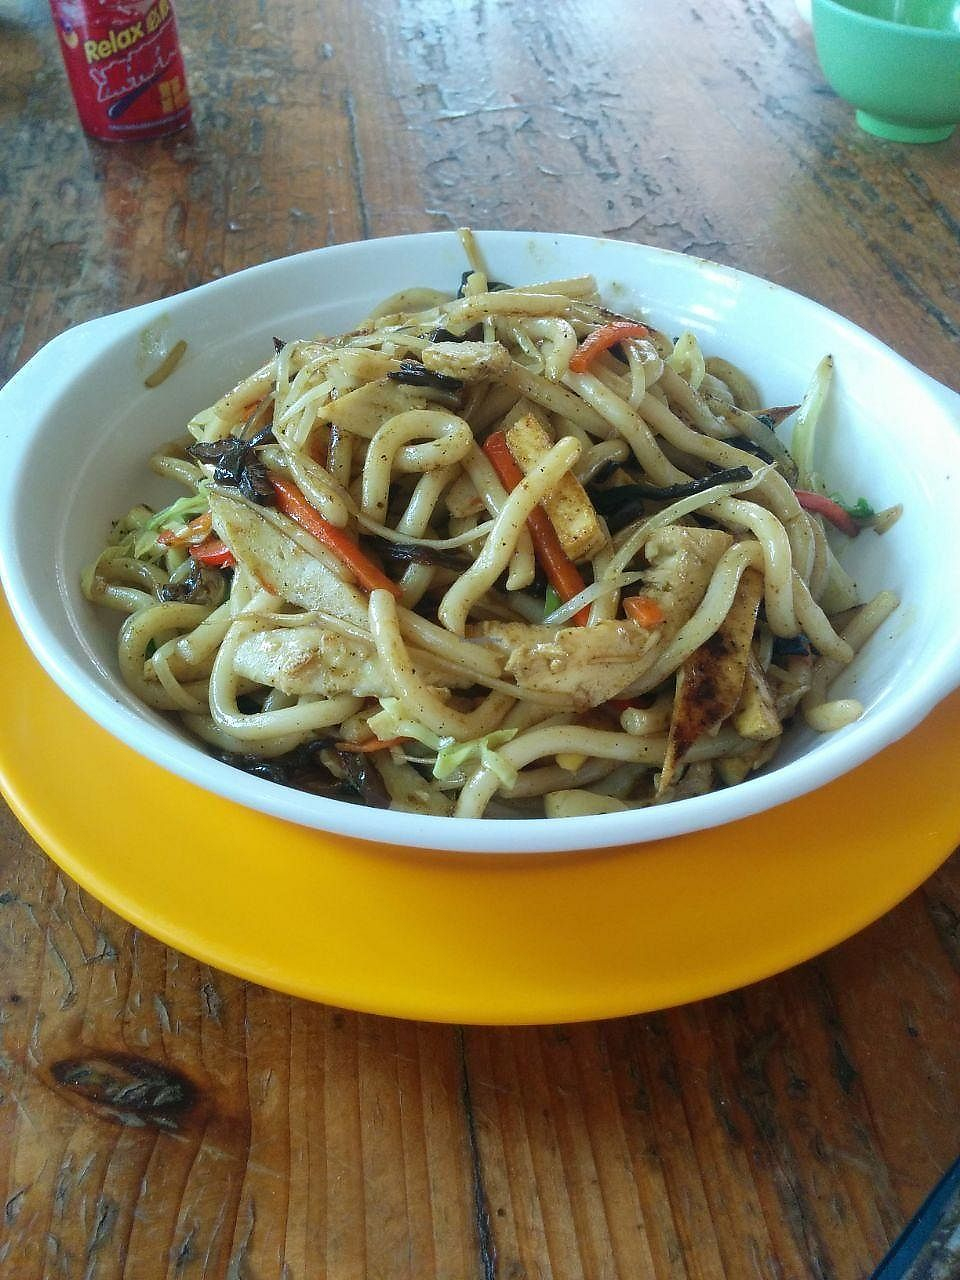 "Photo of Ten Thousand Buddhas Monastery Vegetarian Canteen  by <a href=""/members/profile/FlokiTheCat"">FlokiTheCat</a> <br/>Fried noodles Singapore style <br/> June 27, 2017  - <a href='/contact/abuse/image/37398/273934'>Report</a>"